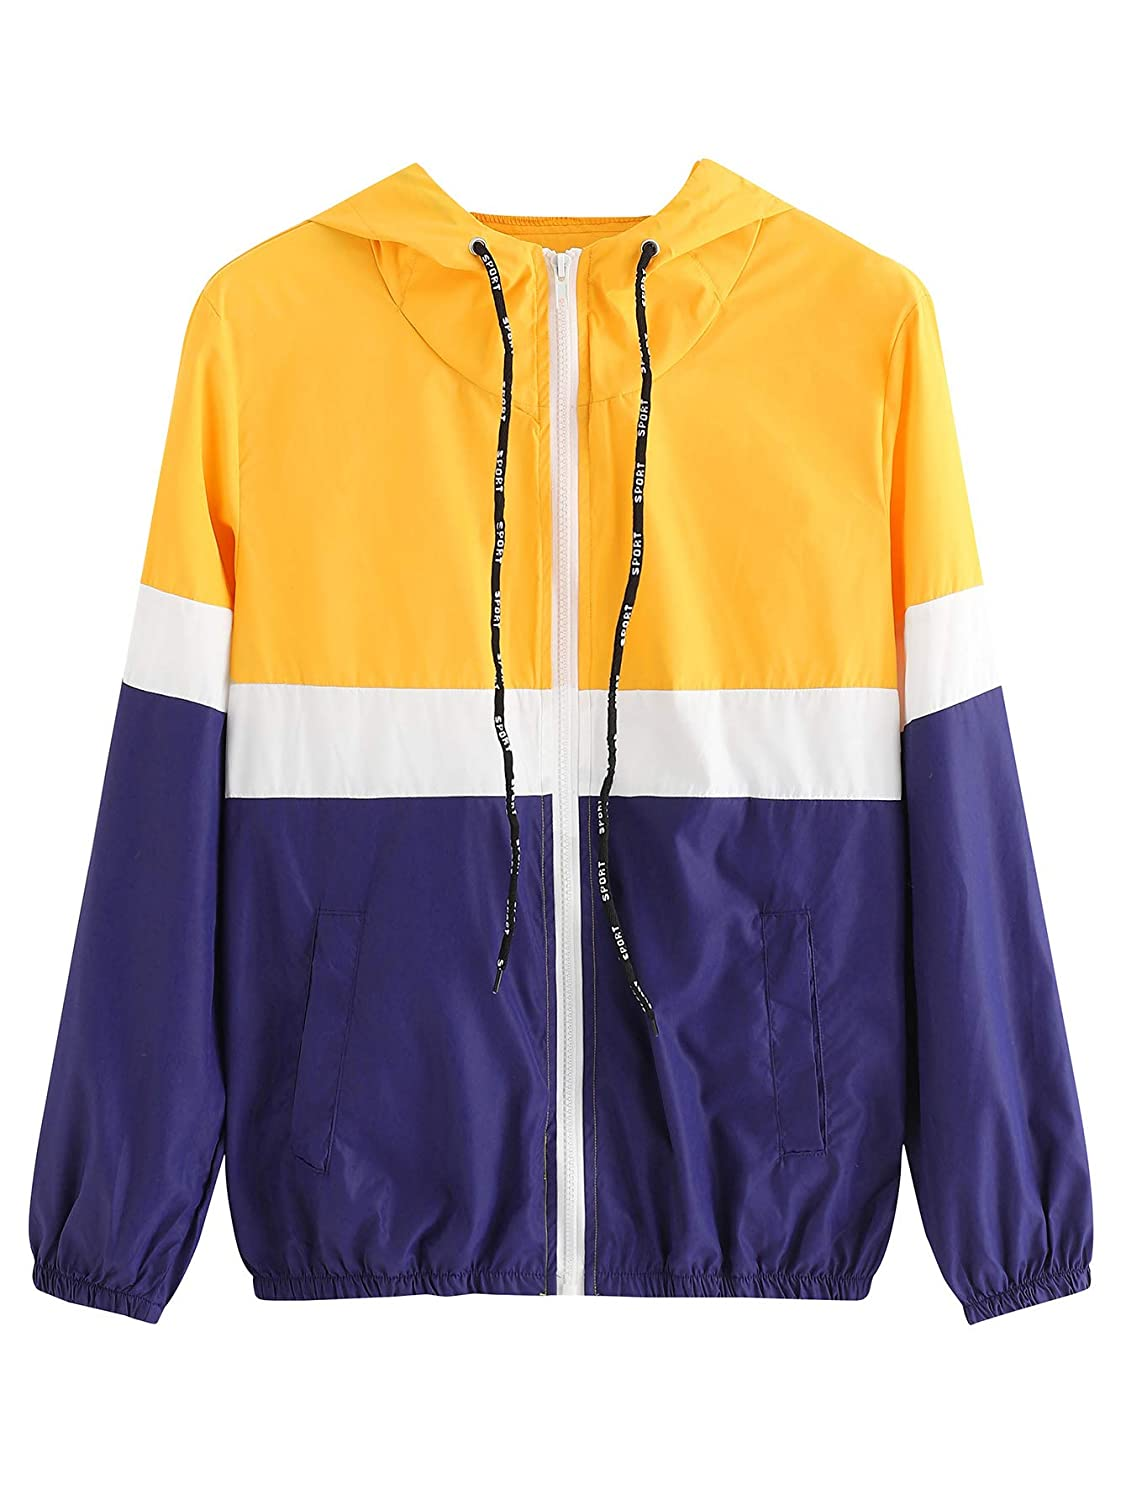 Yellow SweatyRocks Women's Casual Sport colorblock Drawstring Hooded Windbreaker Jacket